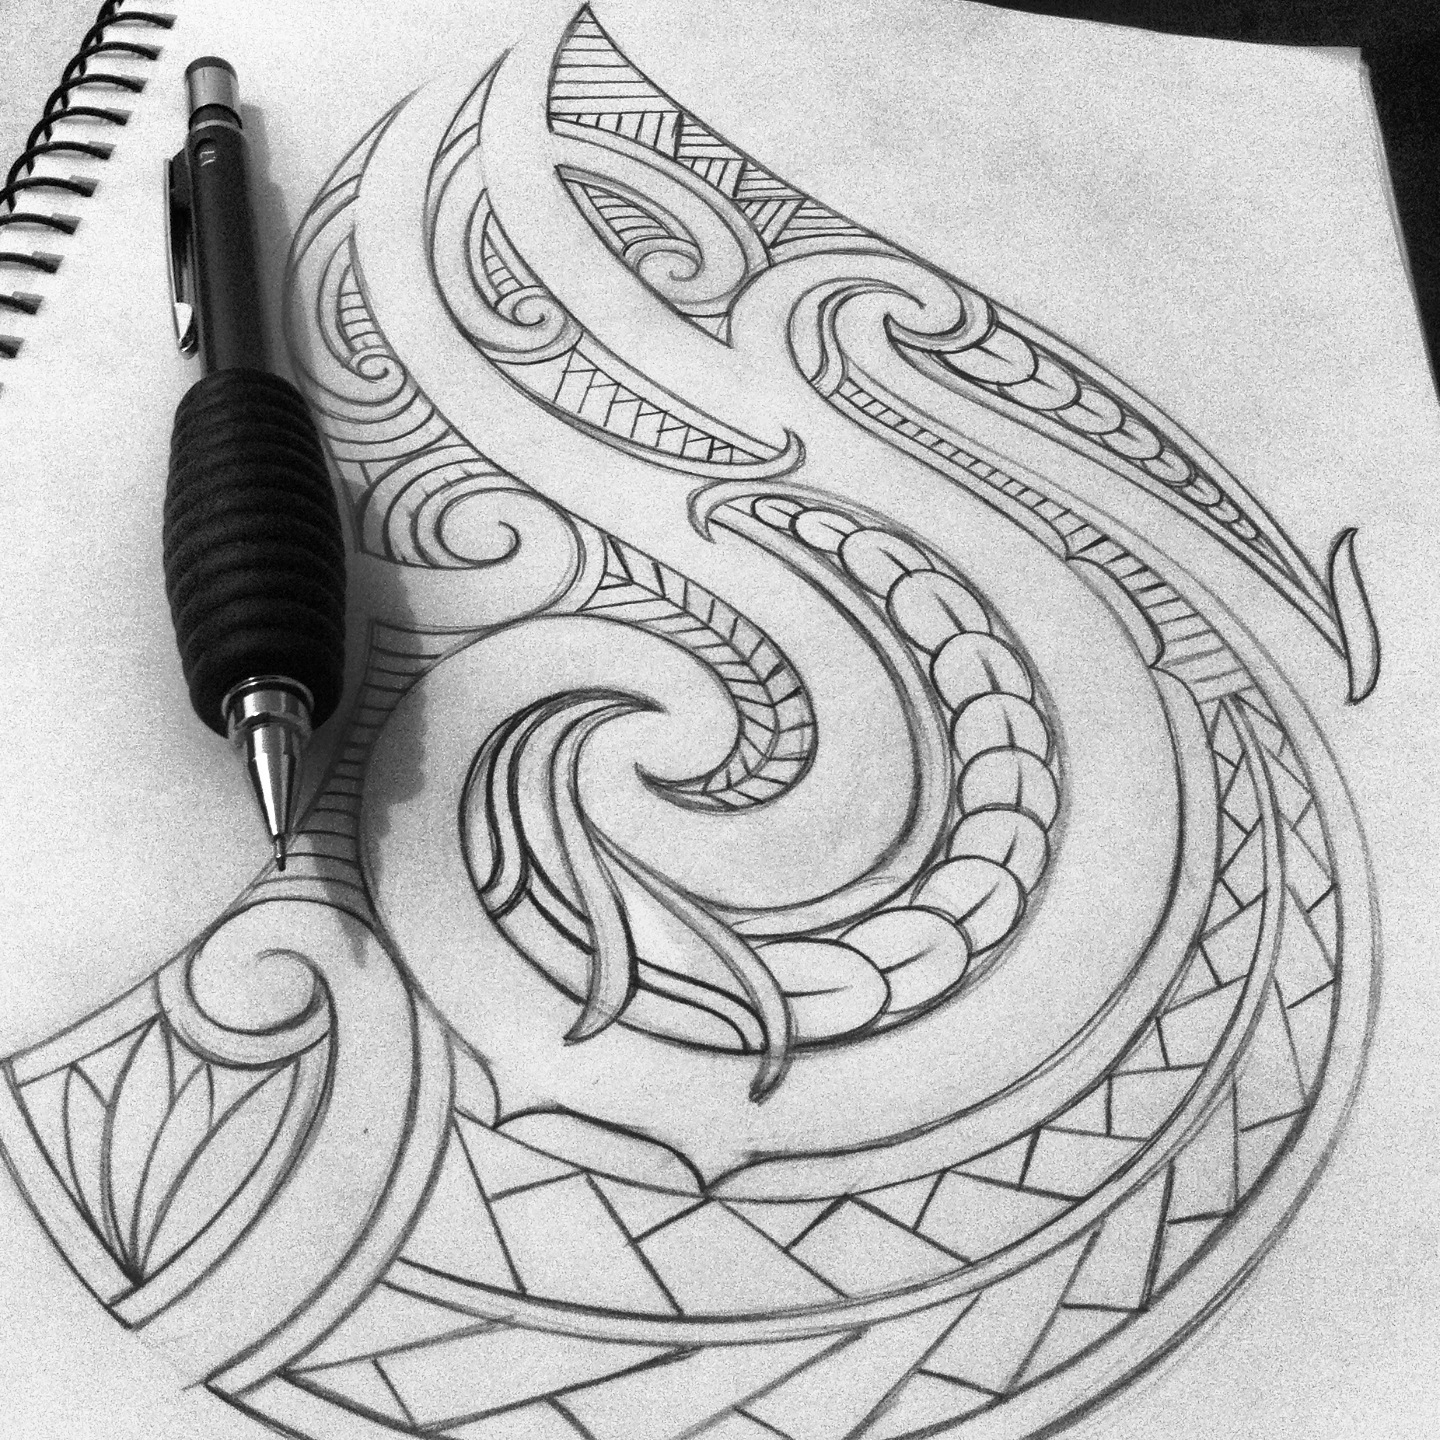 1440x1440 Maori Tattoo Design Wallpaper Wp3008379